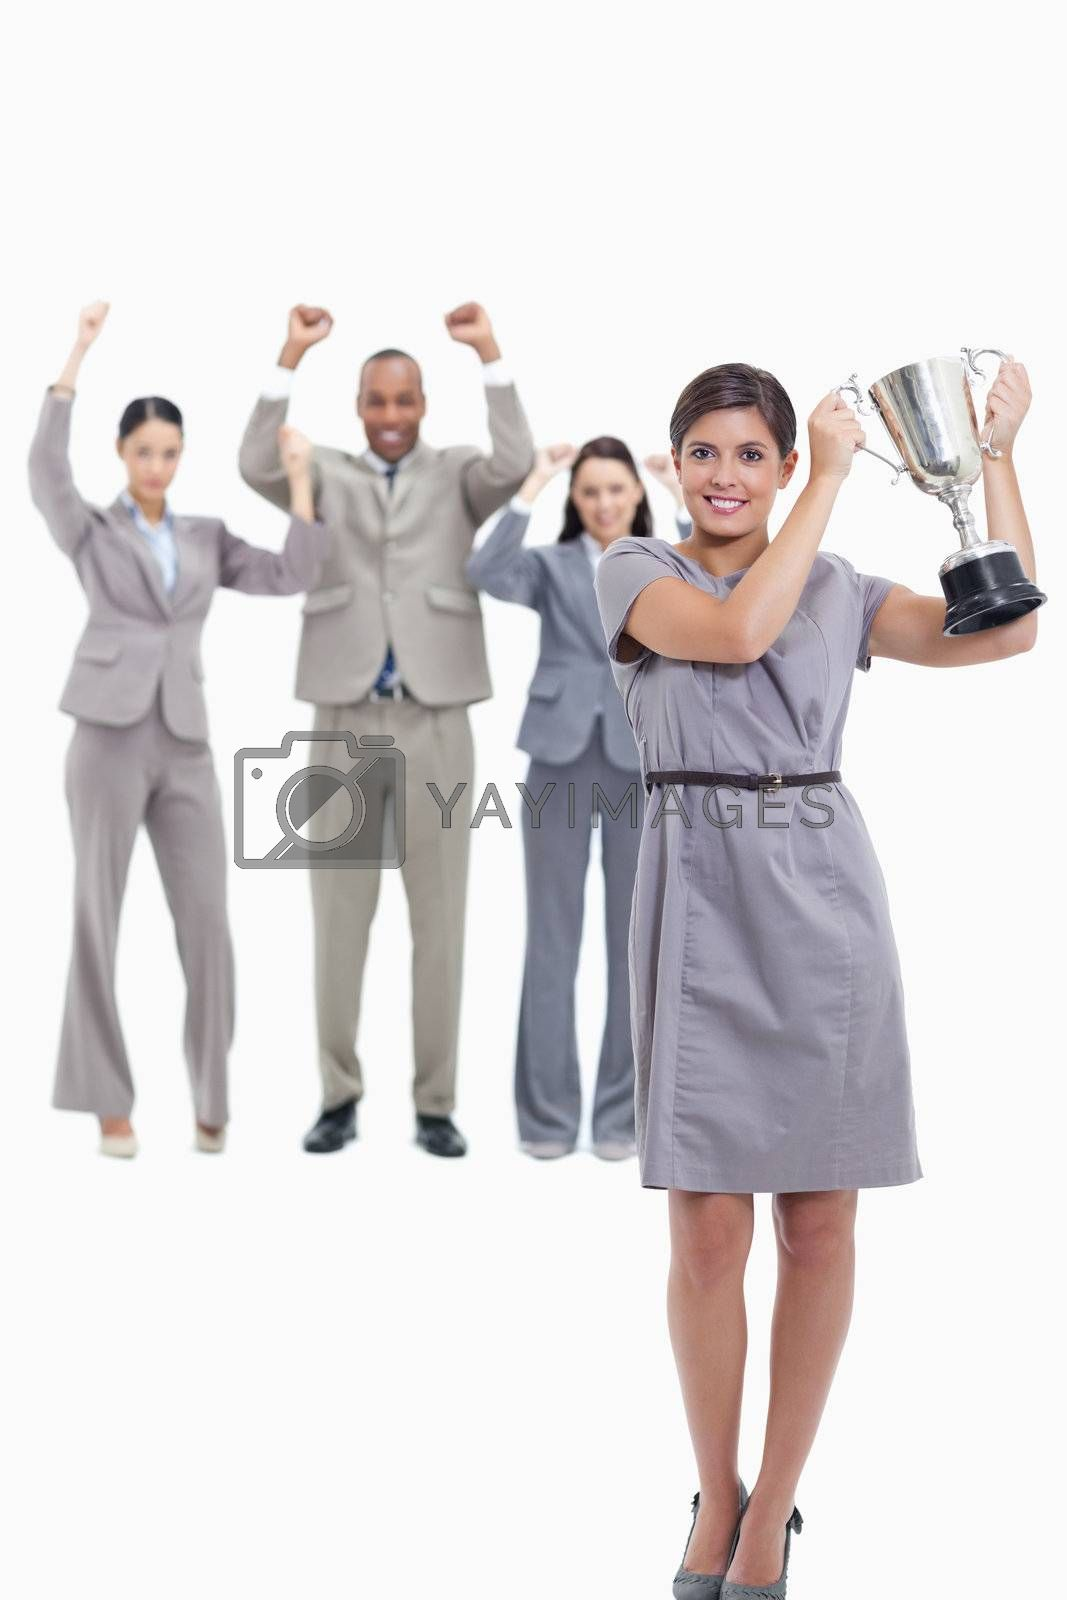 Picture centered on co-workers raising their arms in the background with a woman smiling and holding up a cup